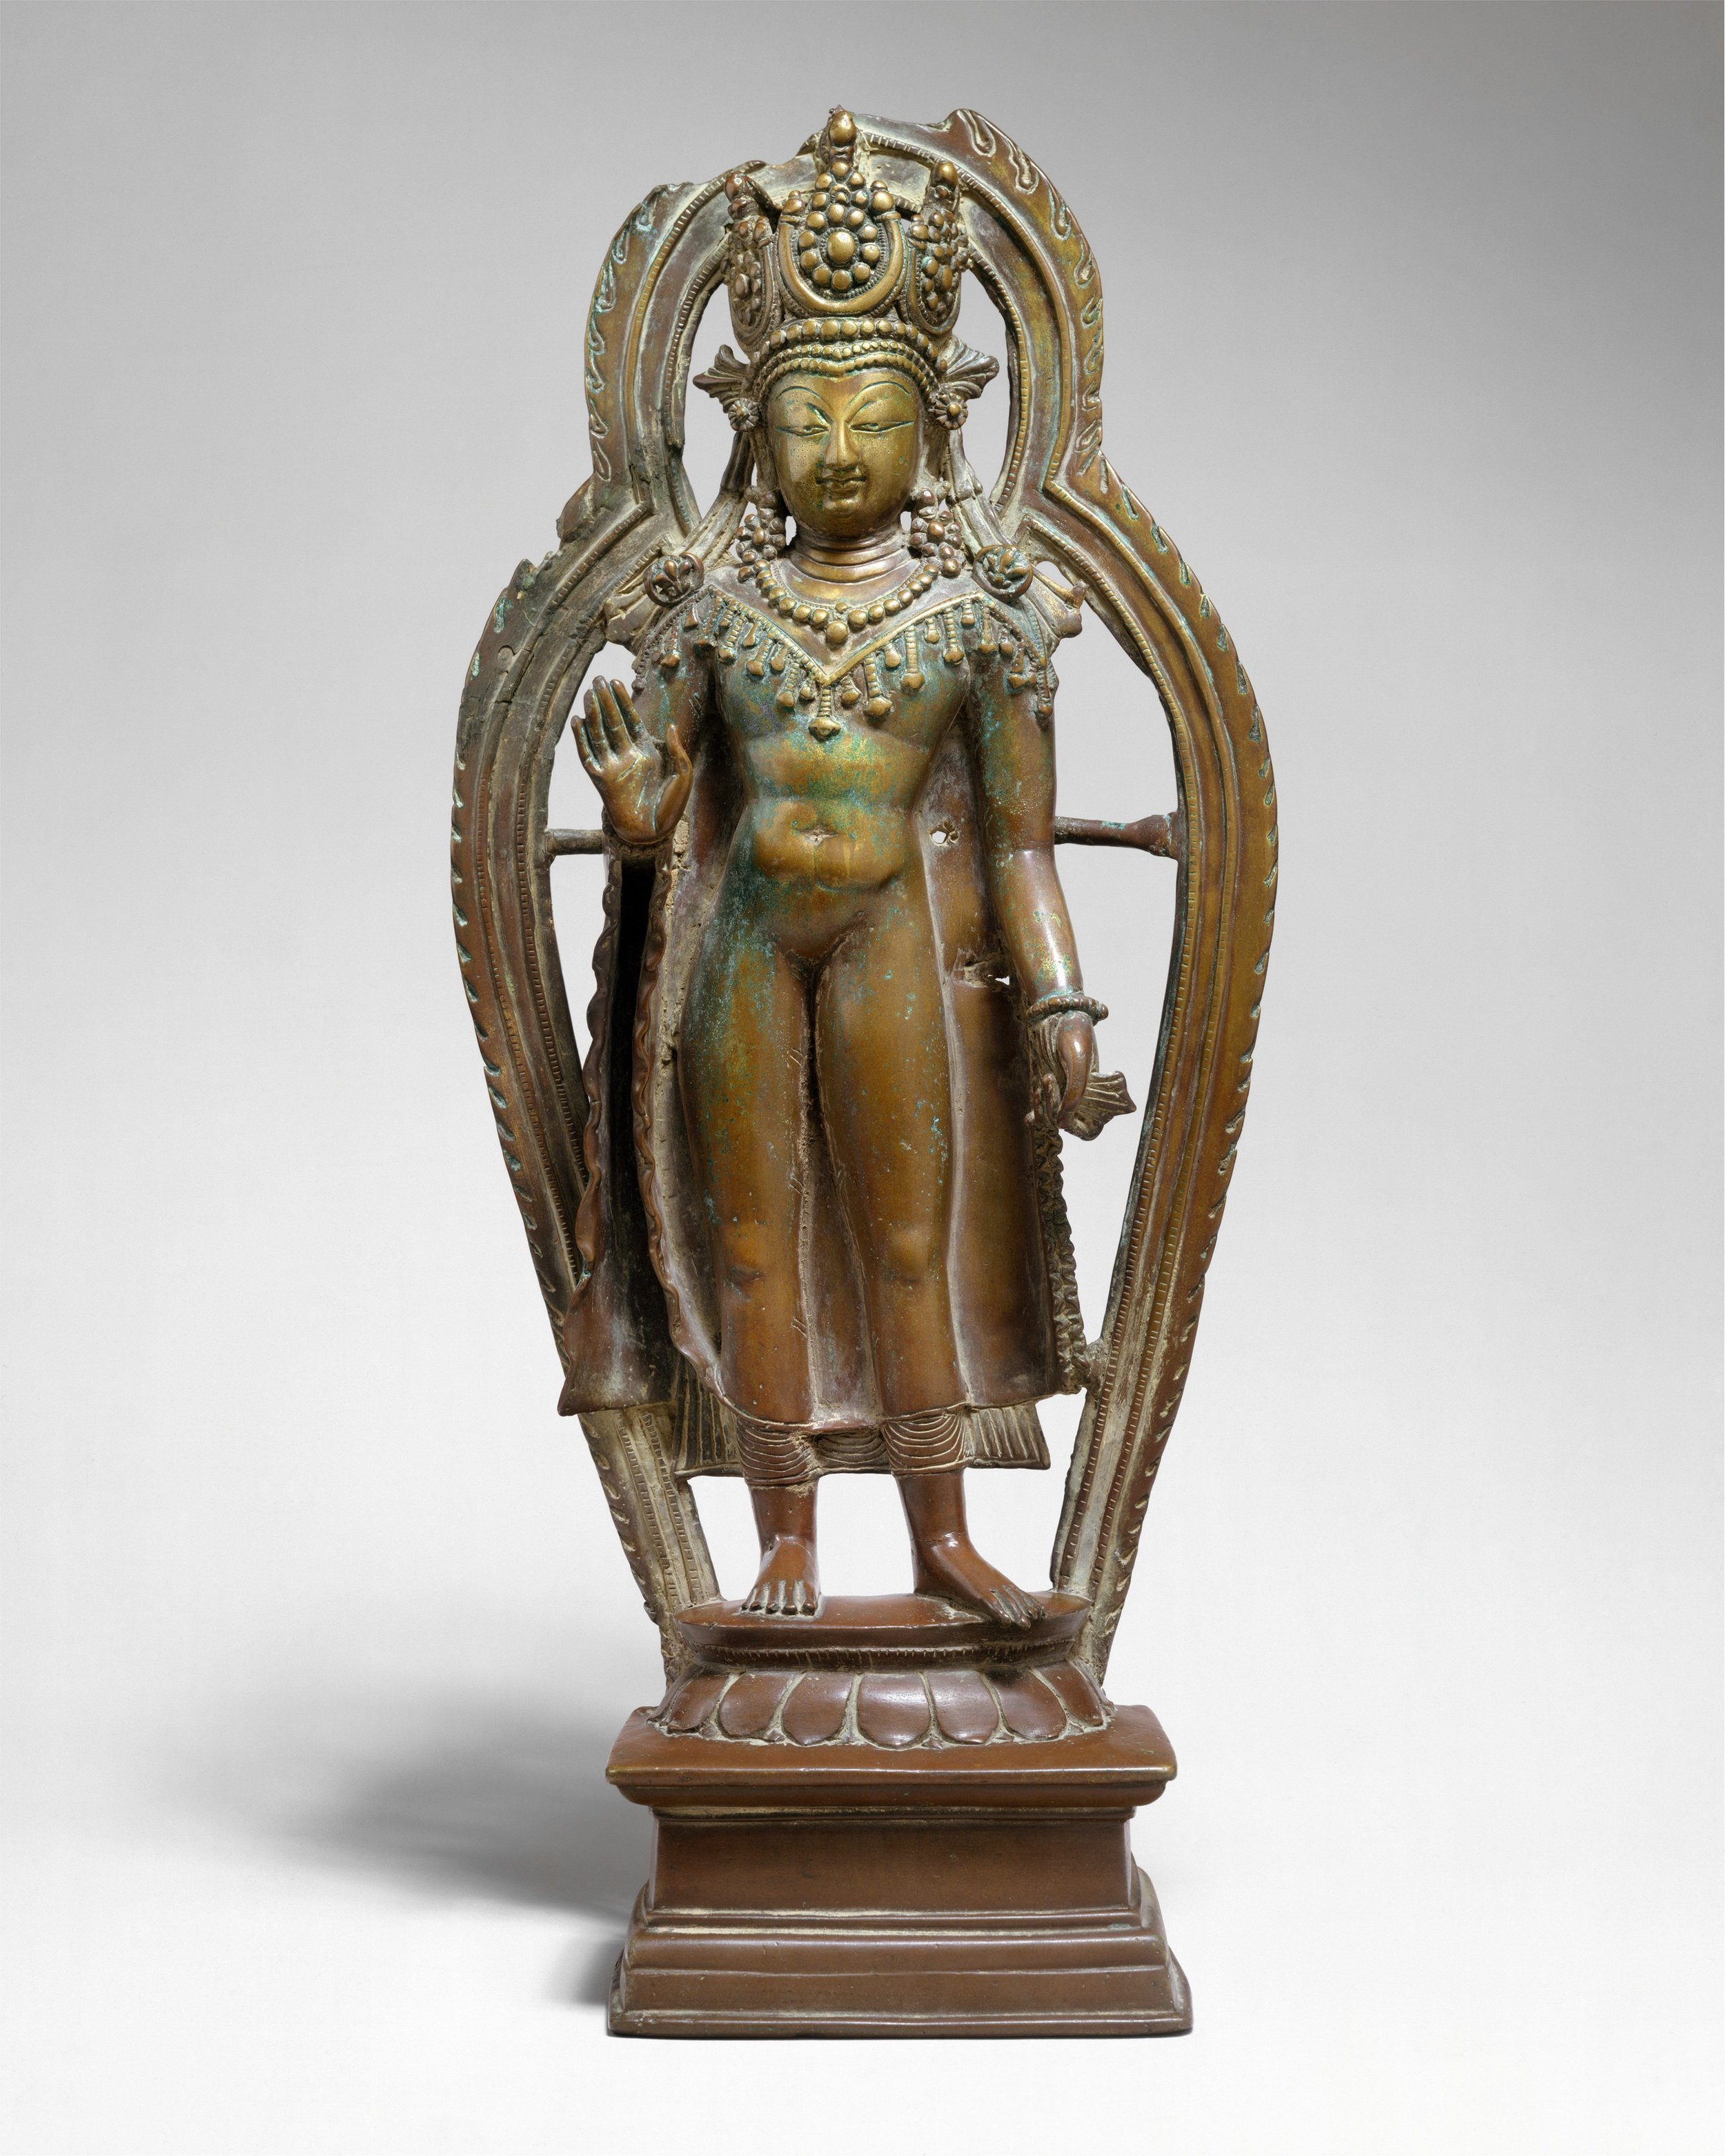 A Crowned Buddha from Kashmir